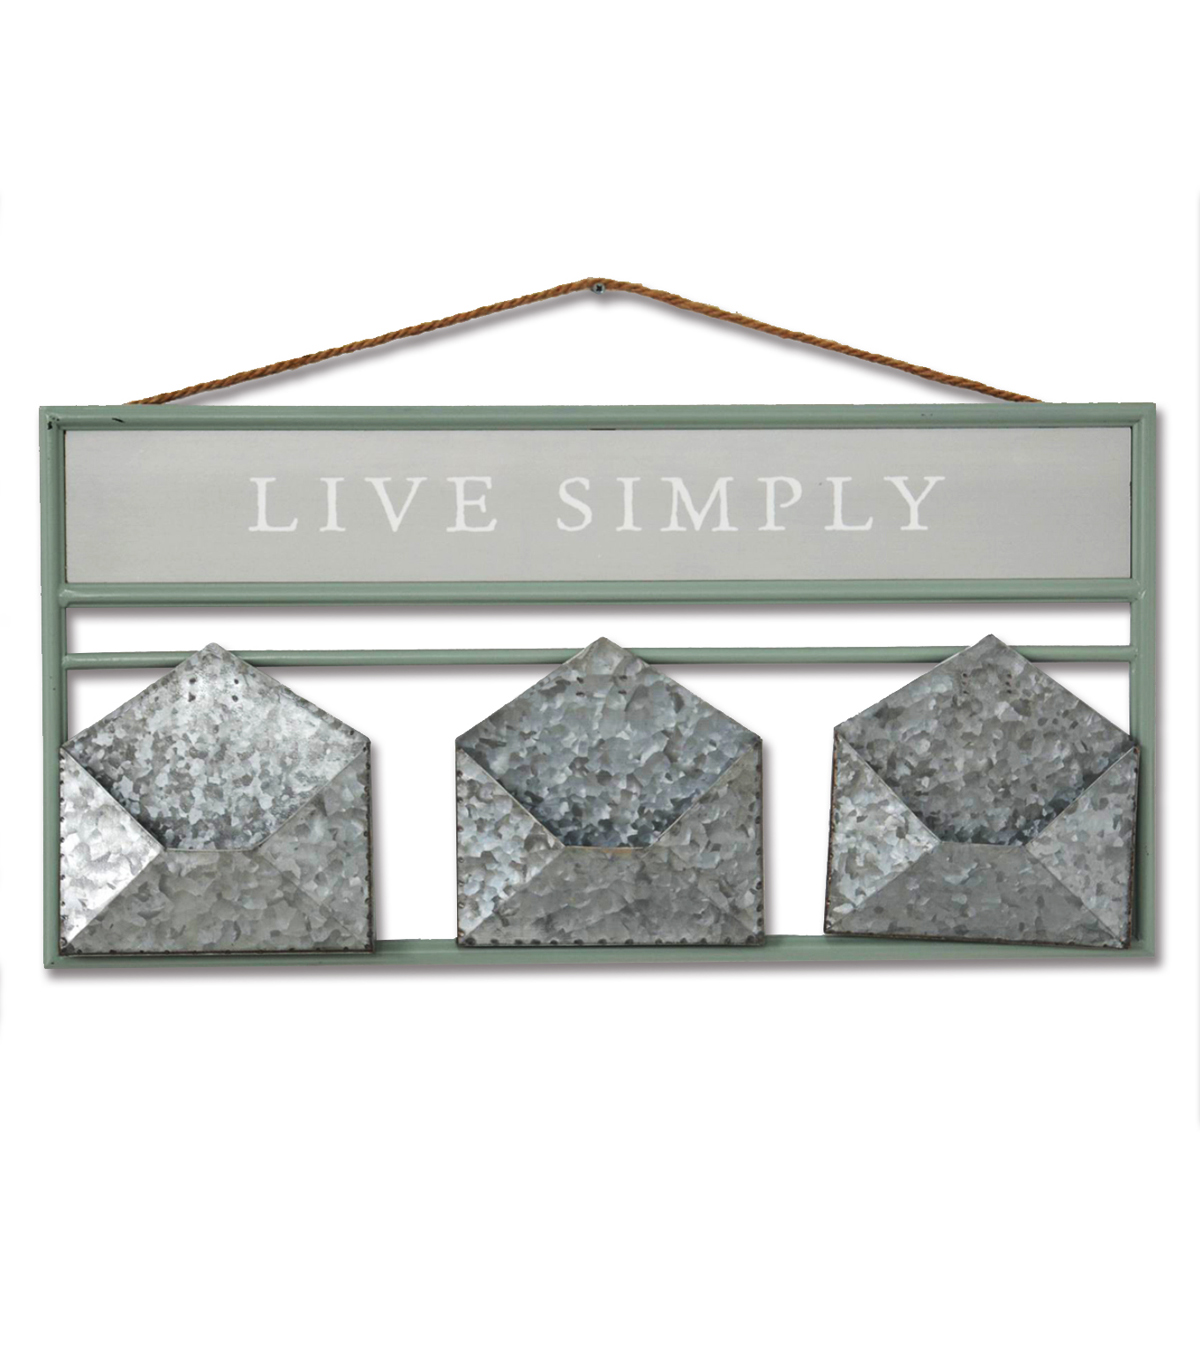 Simply Spring Wall Decor with Envelope Shelf-Live Simply